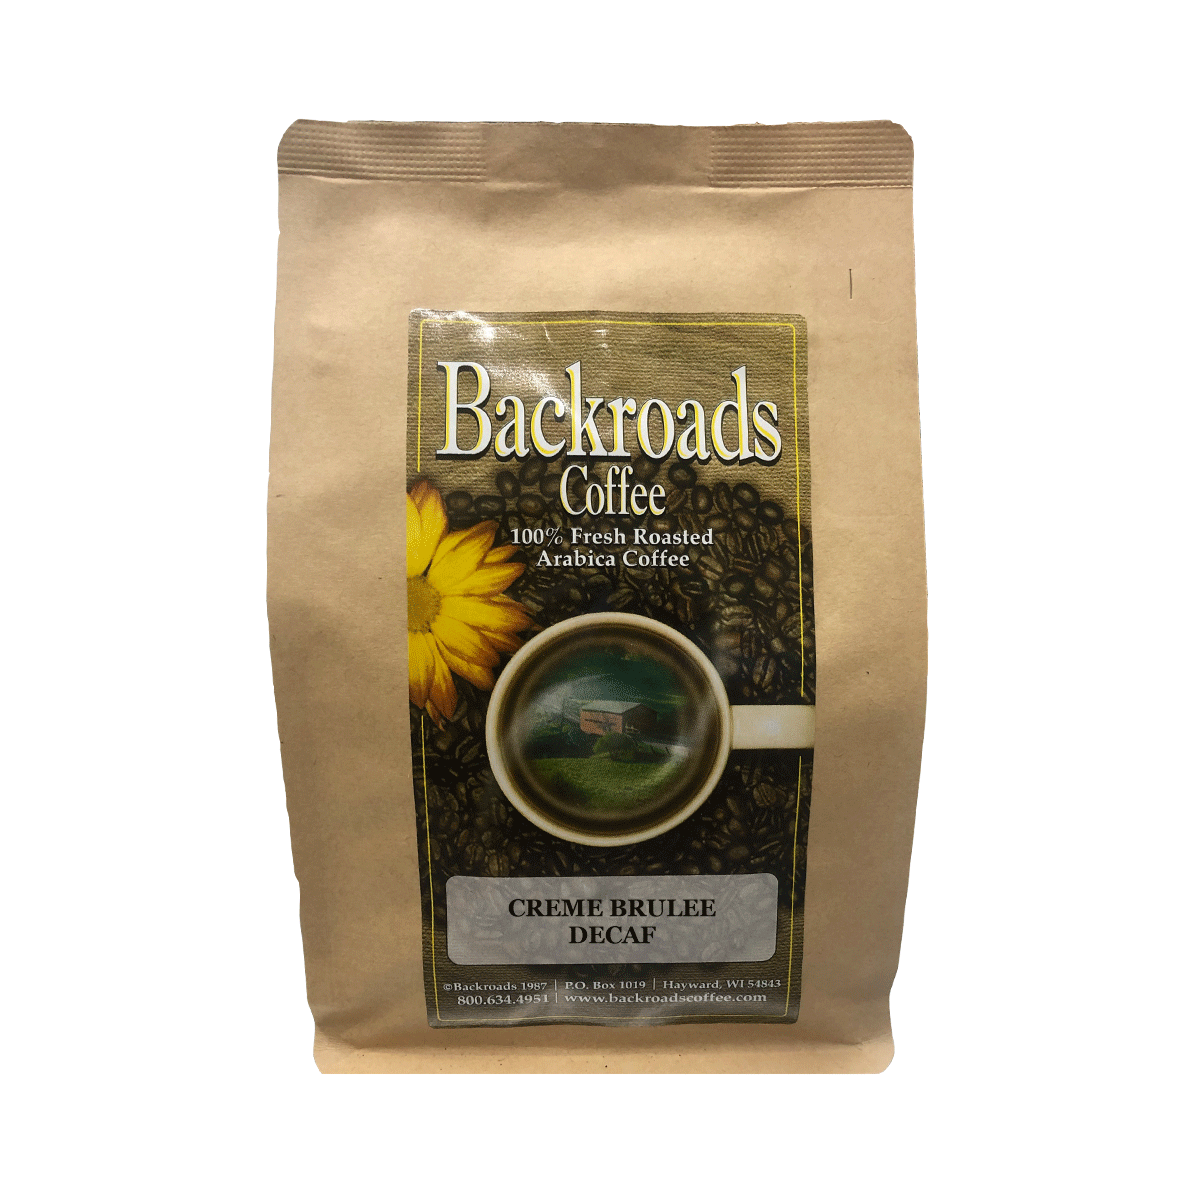 Creme Brulee Decaf 8 oz Coffee